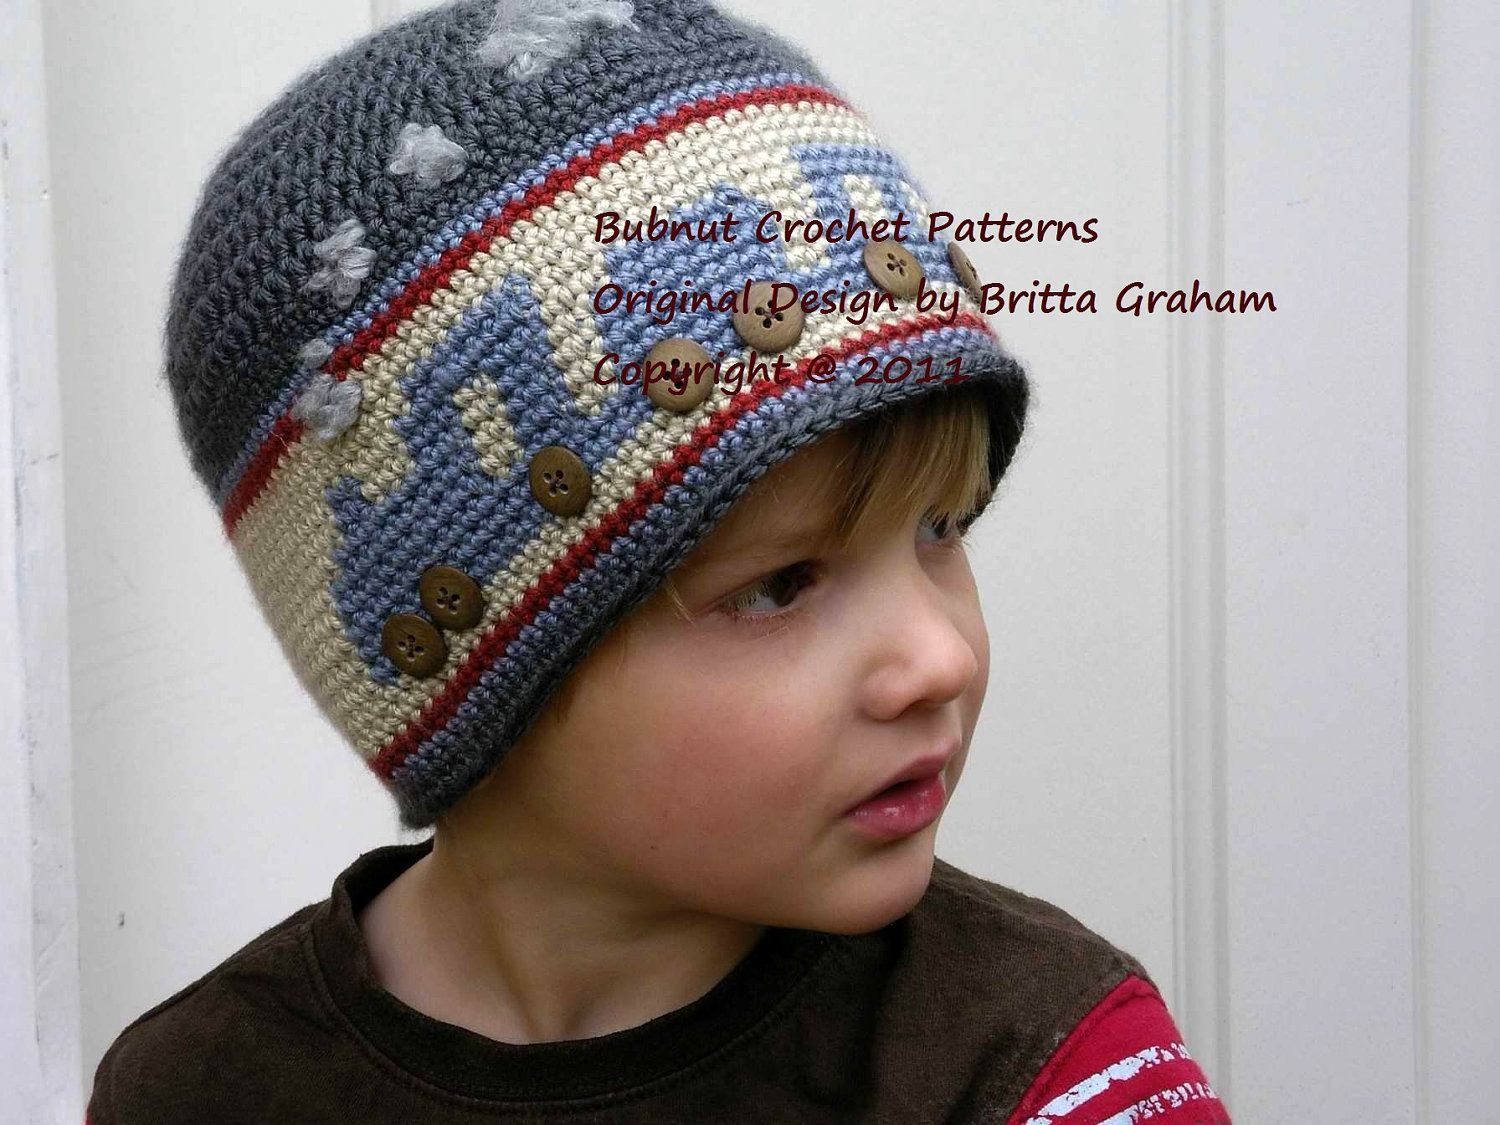 Choo choo train crochet hat pattern no402 emailed2u four sizes dk boys crochet hat pattern choo choo train hat crochet pattern four sizes uses light worsted weight yarn on etsy bankloansurffo Choice Image